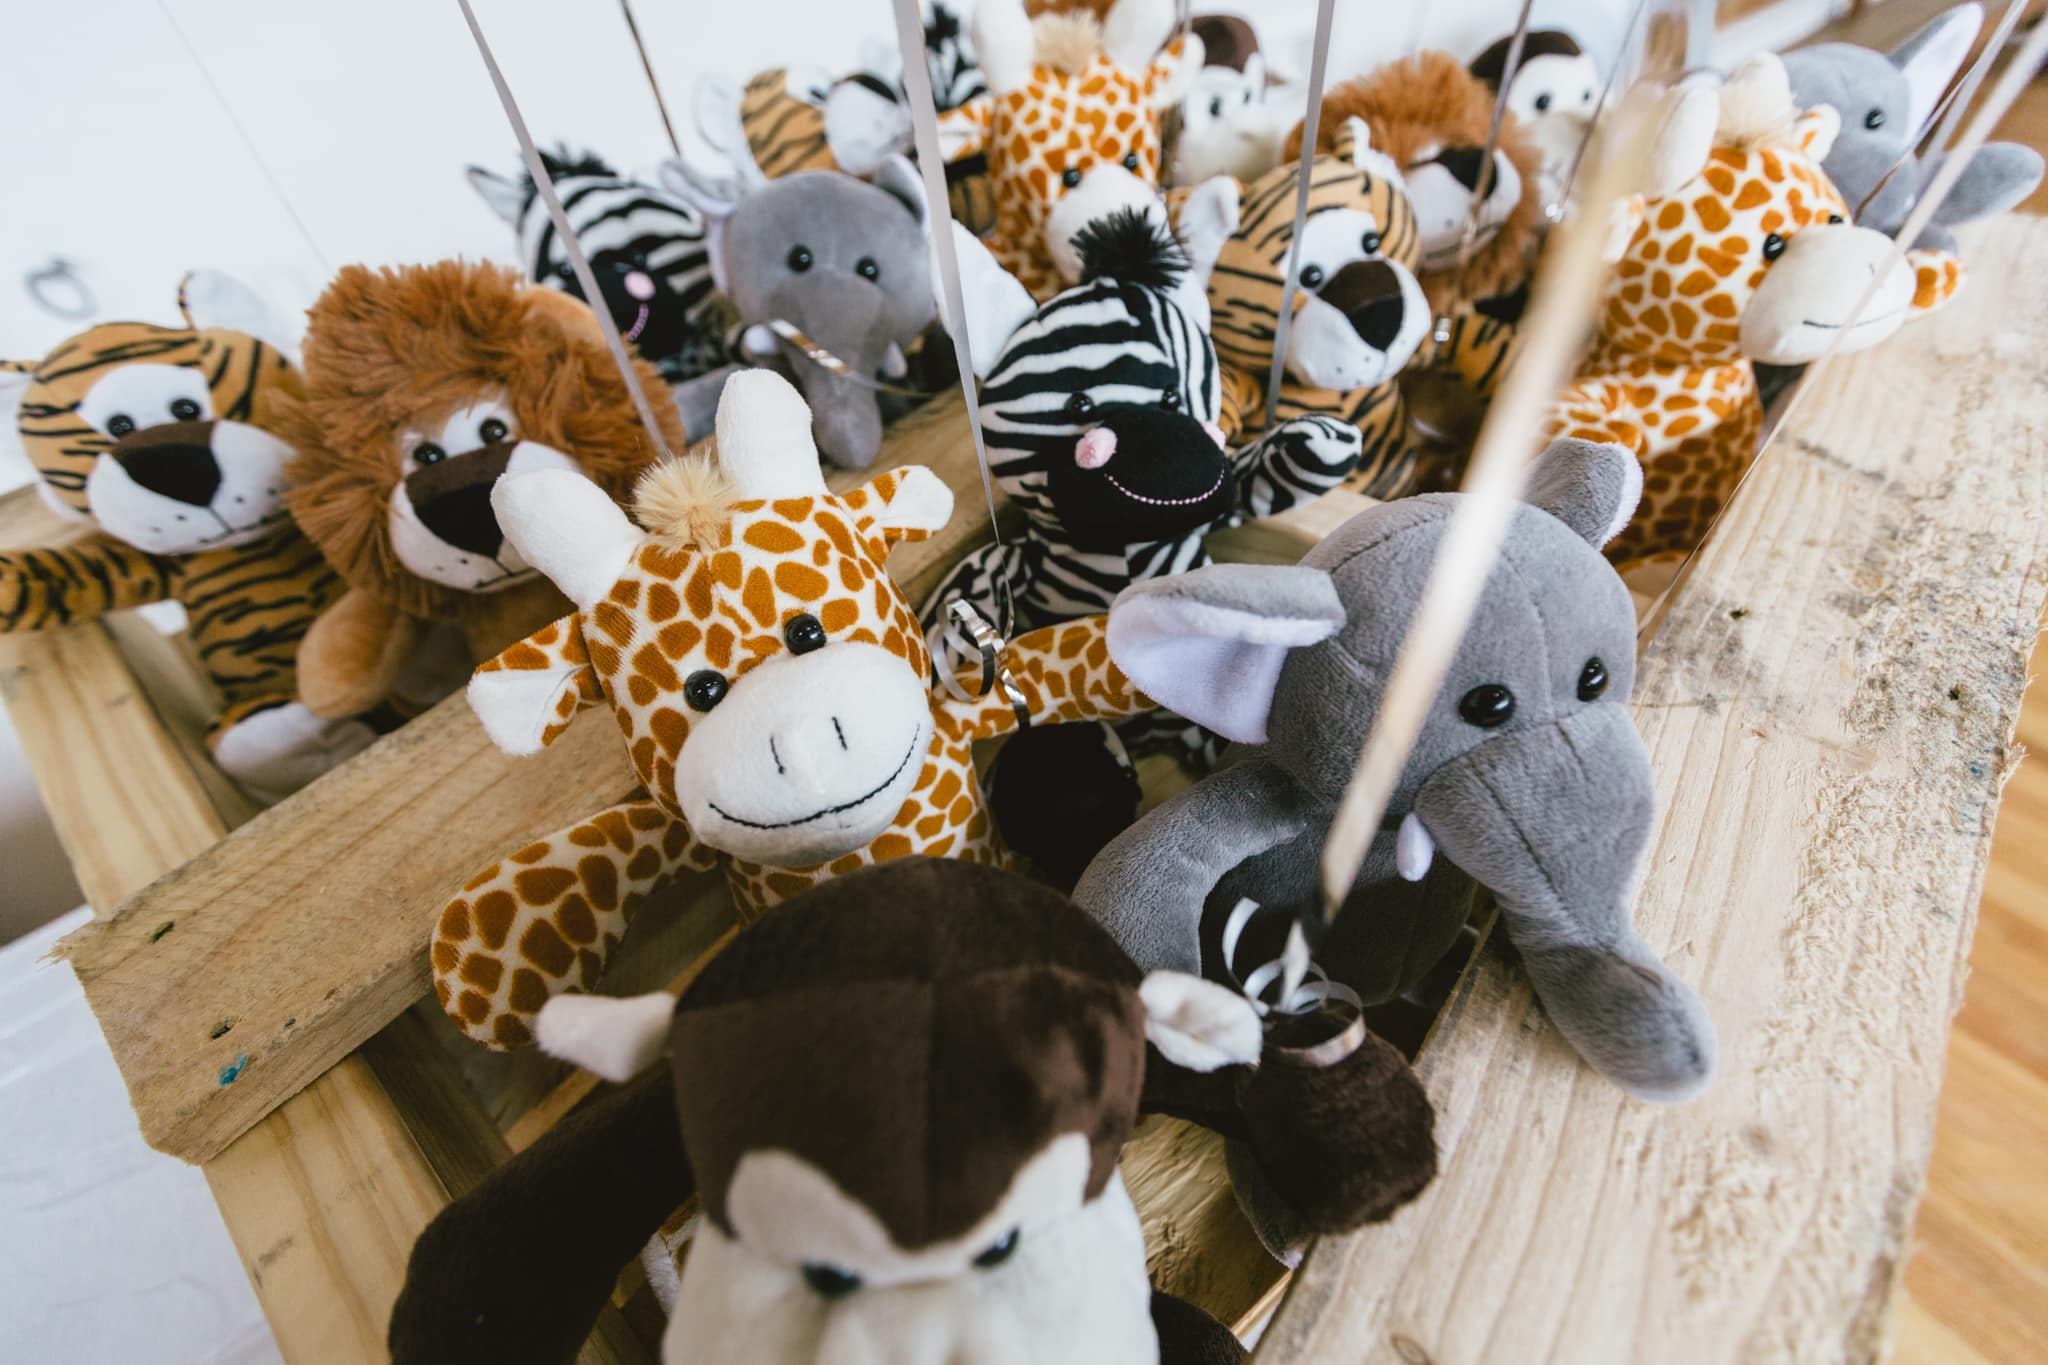 animals at kids birthday party event - photographer captures styling and decoration - personal and commercial lifestyle photos